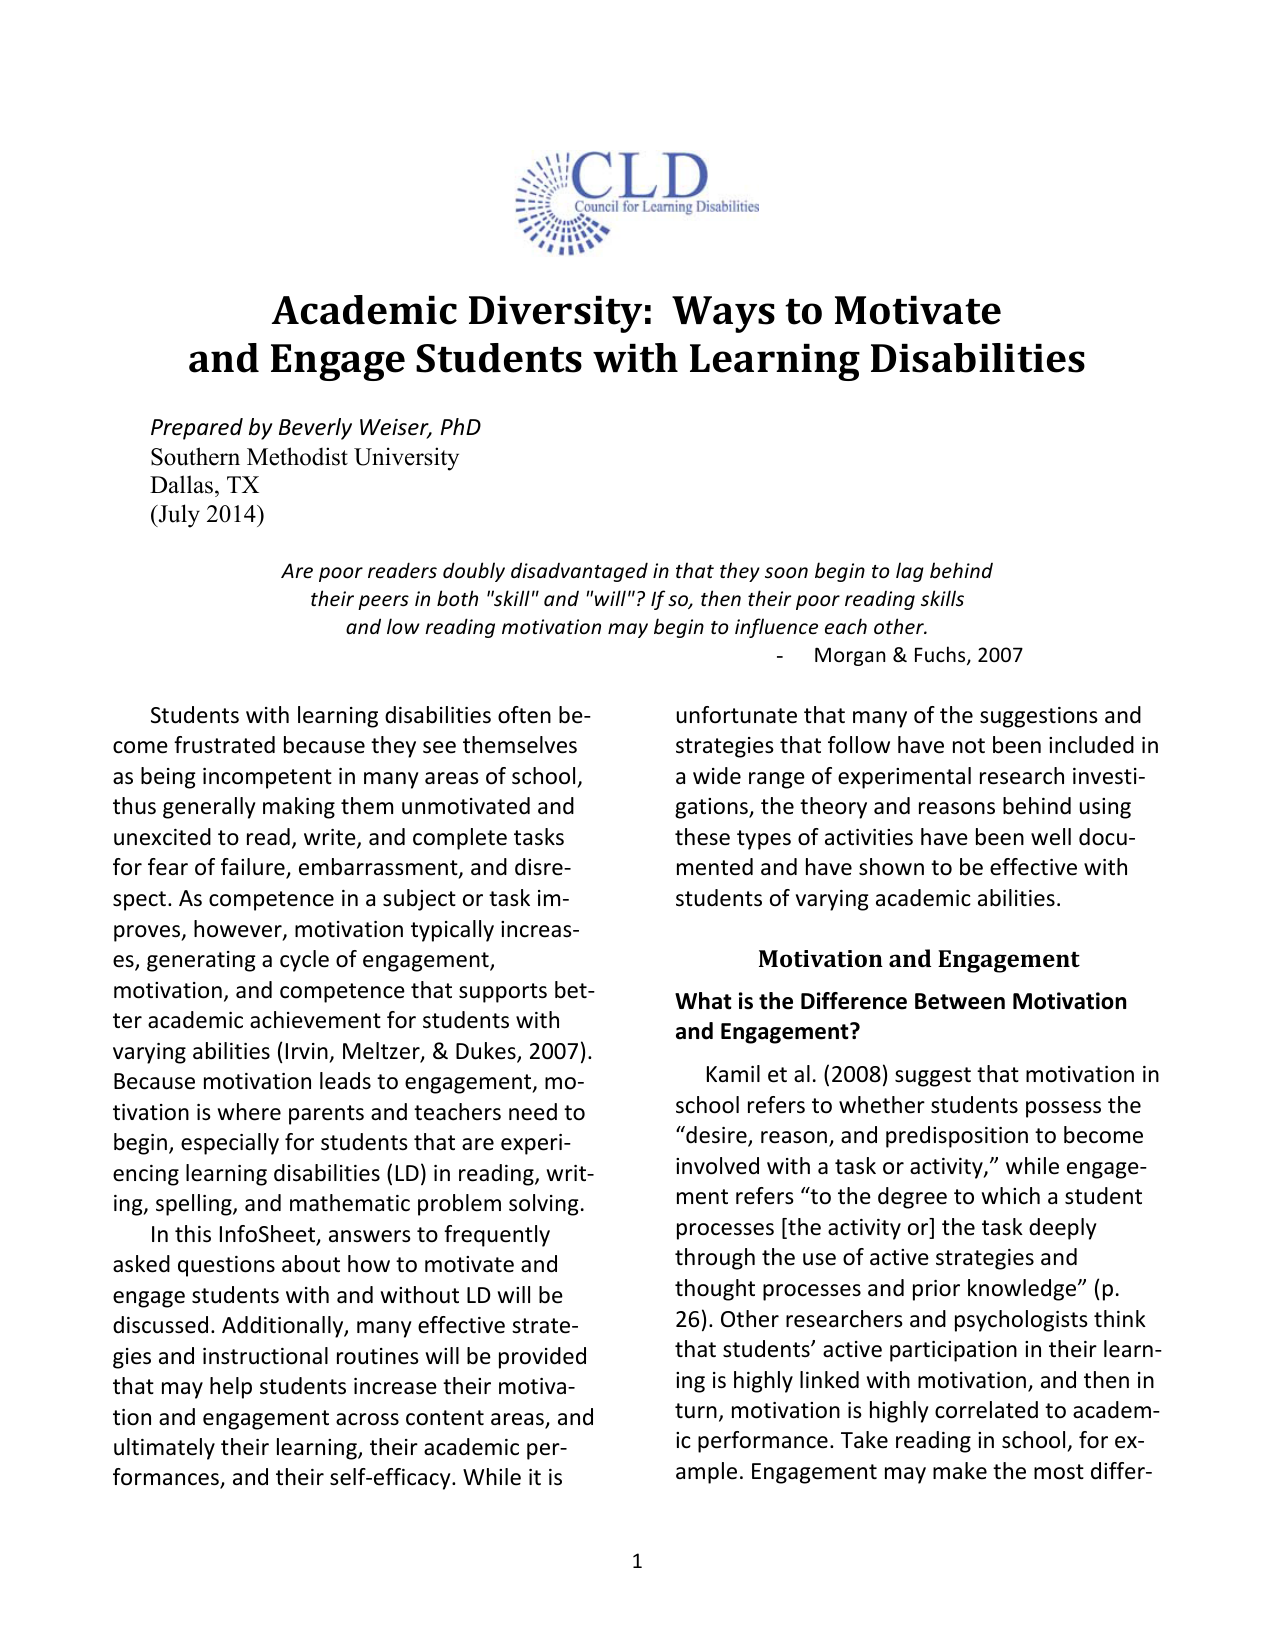 Academic Diversity: Ways to Motivate and Engage Students with